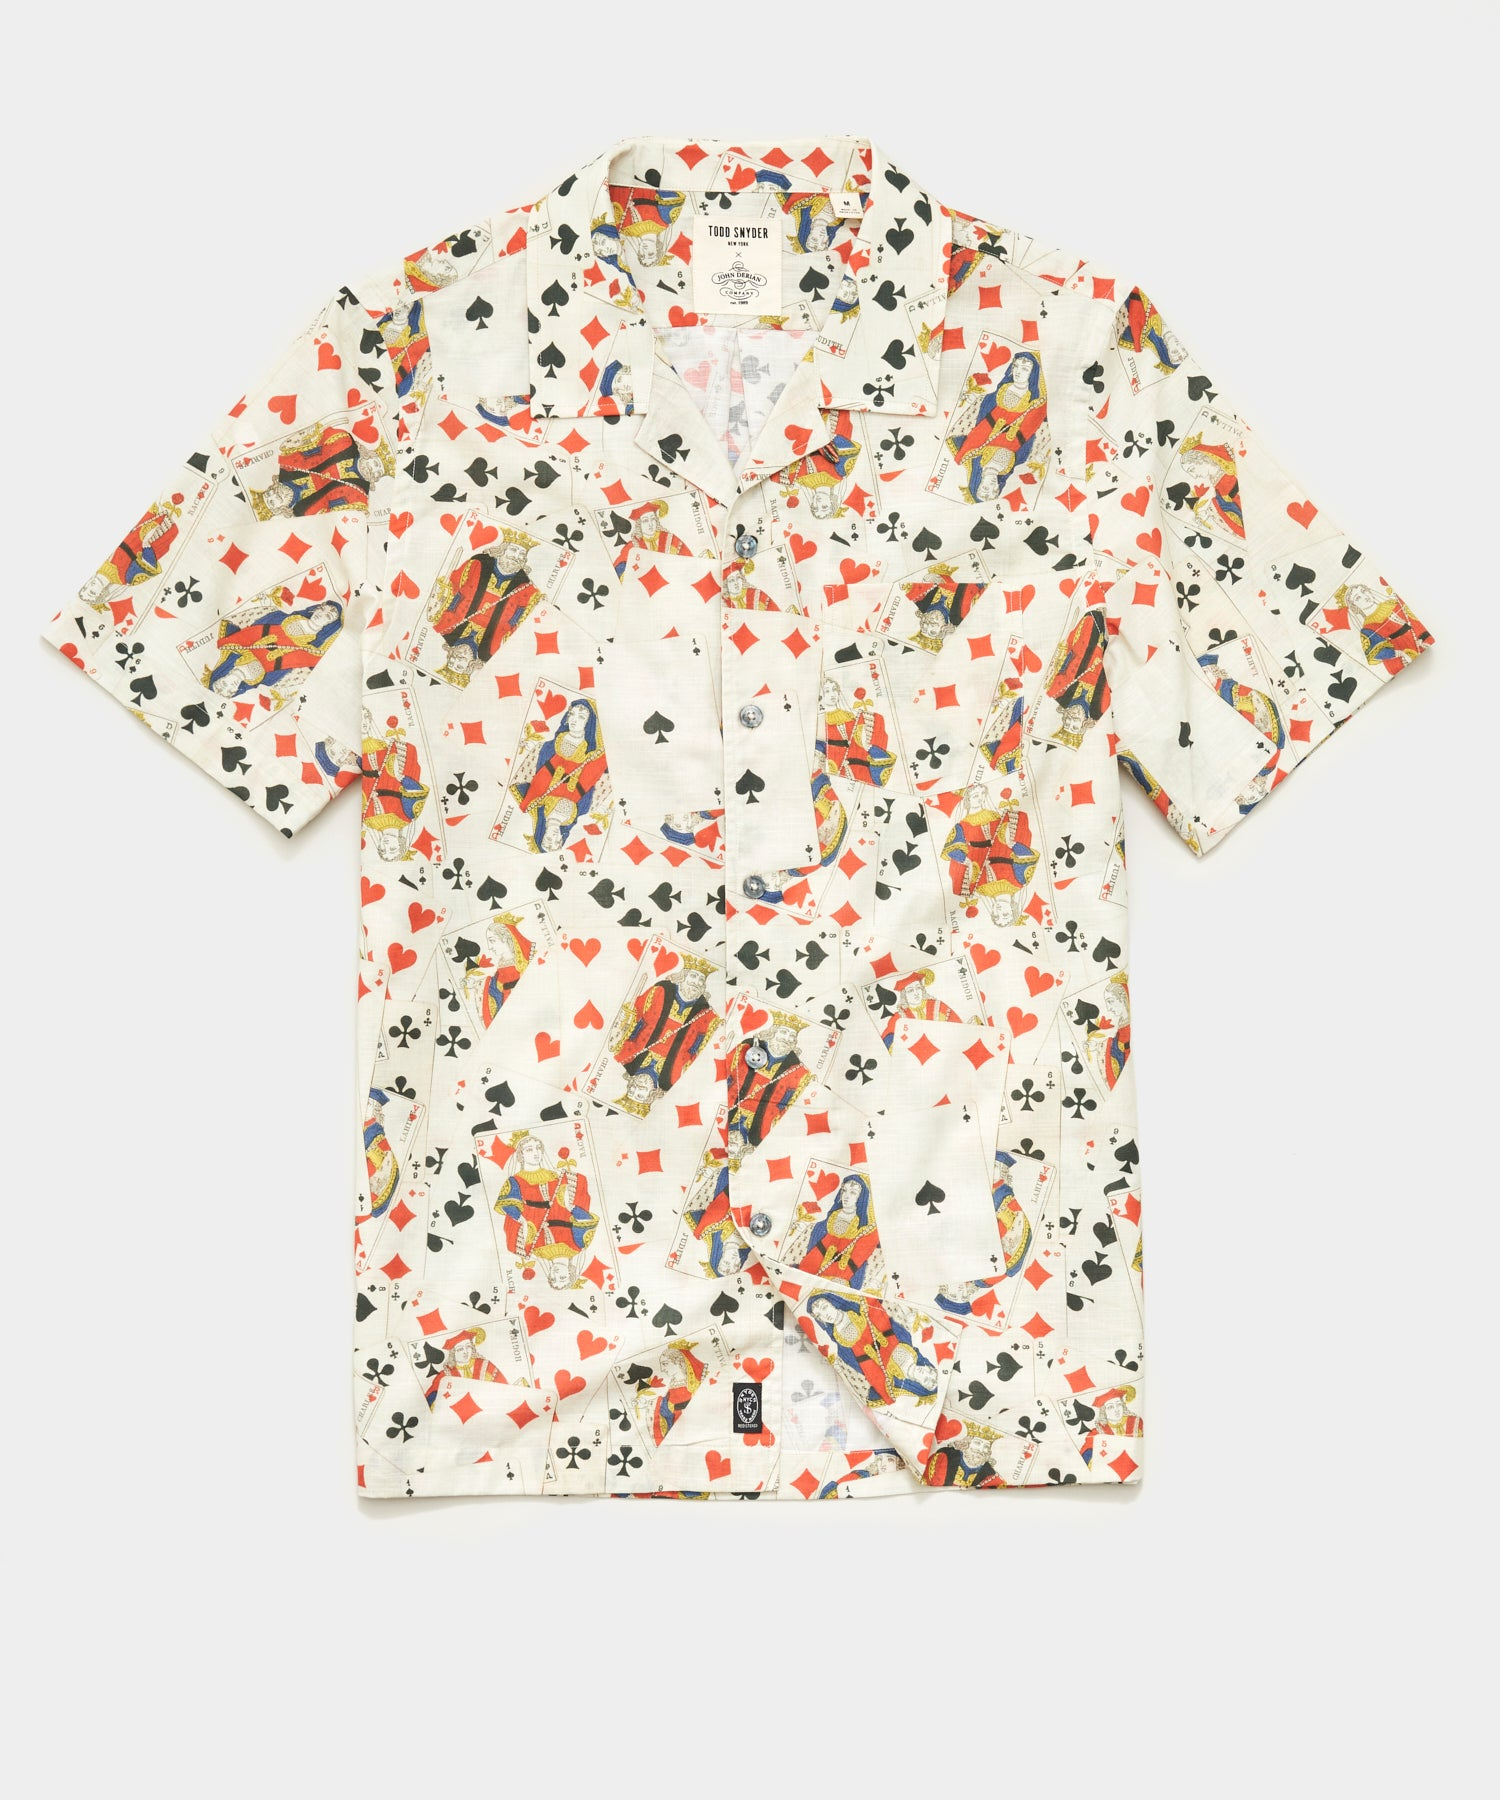 Todd Snyder x John Derian Deck Of Cards Shirt